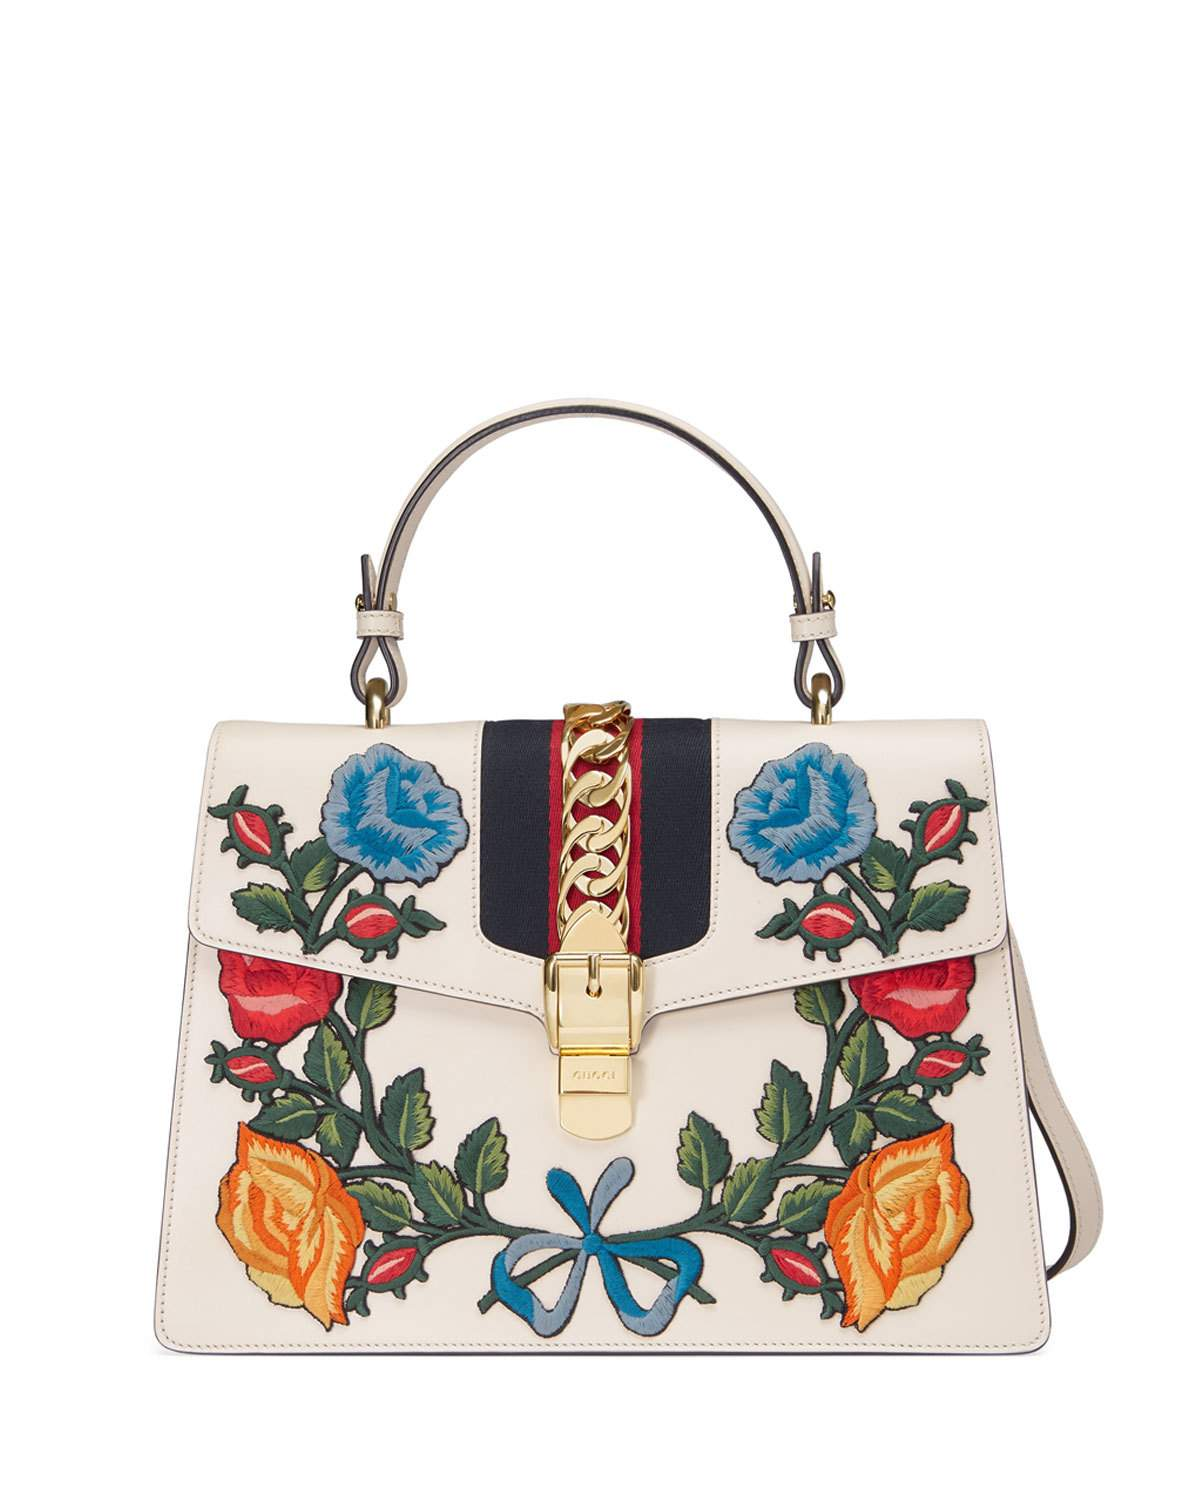 c9a381b1f1545a Gucci Resort 2017 Bag Collection | Spotted Fashion